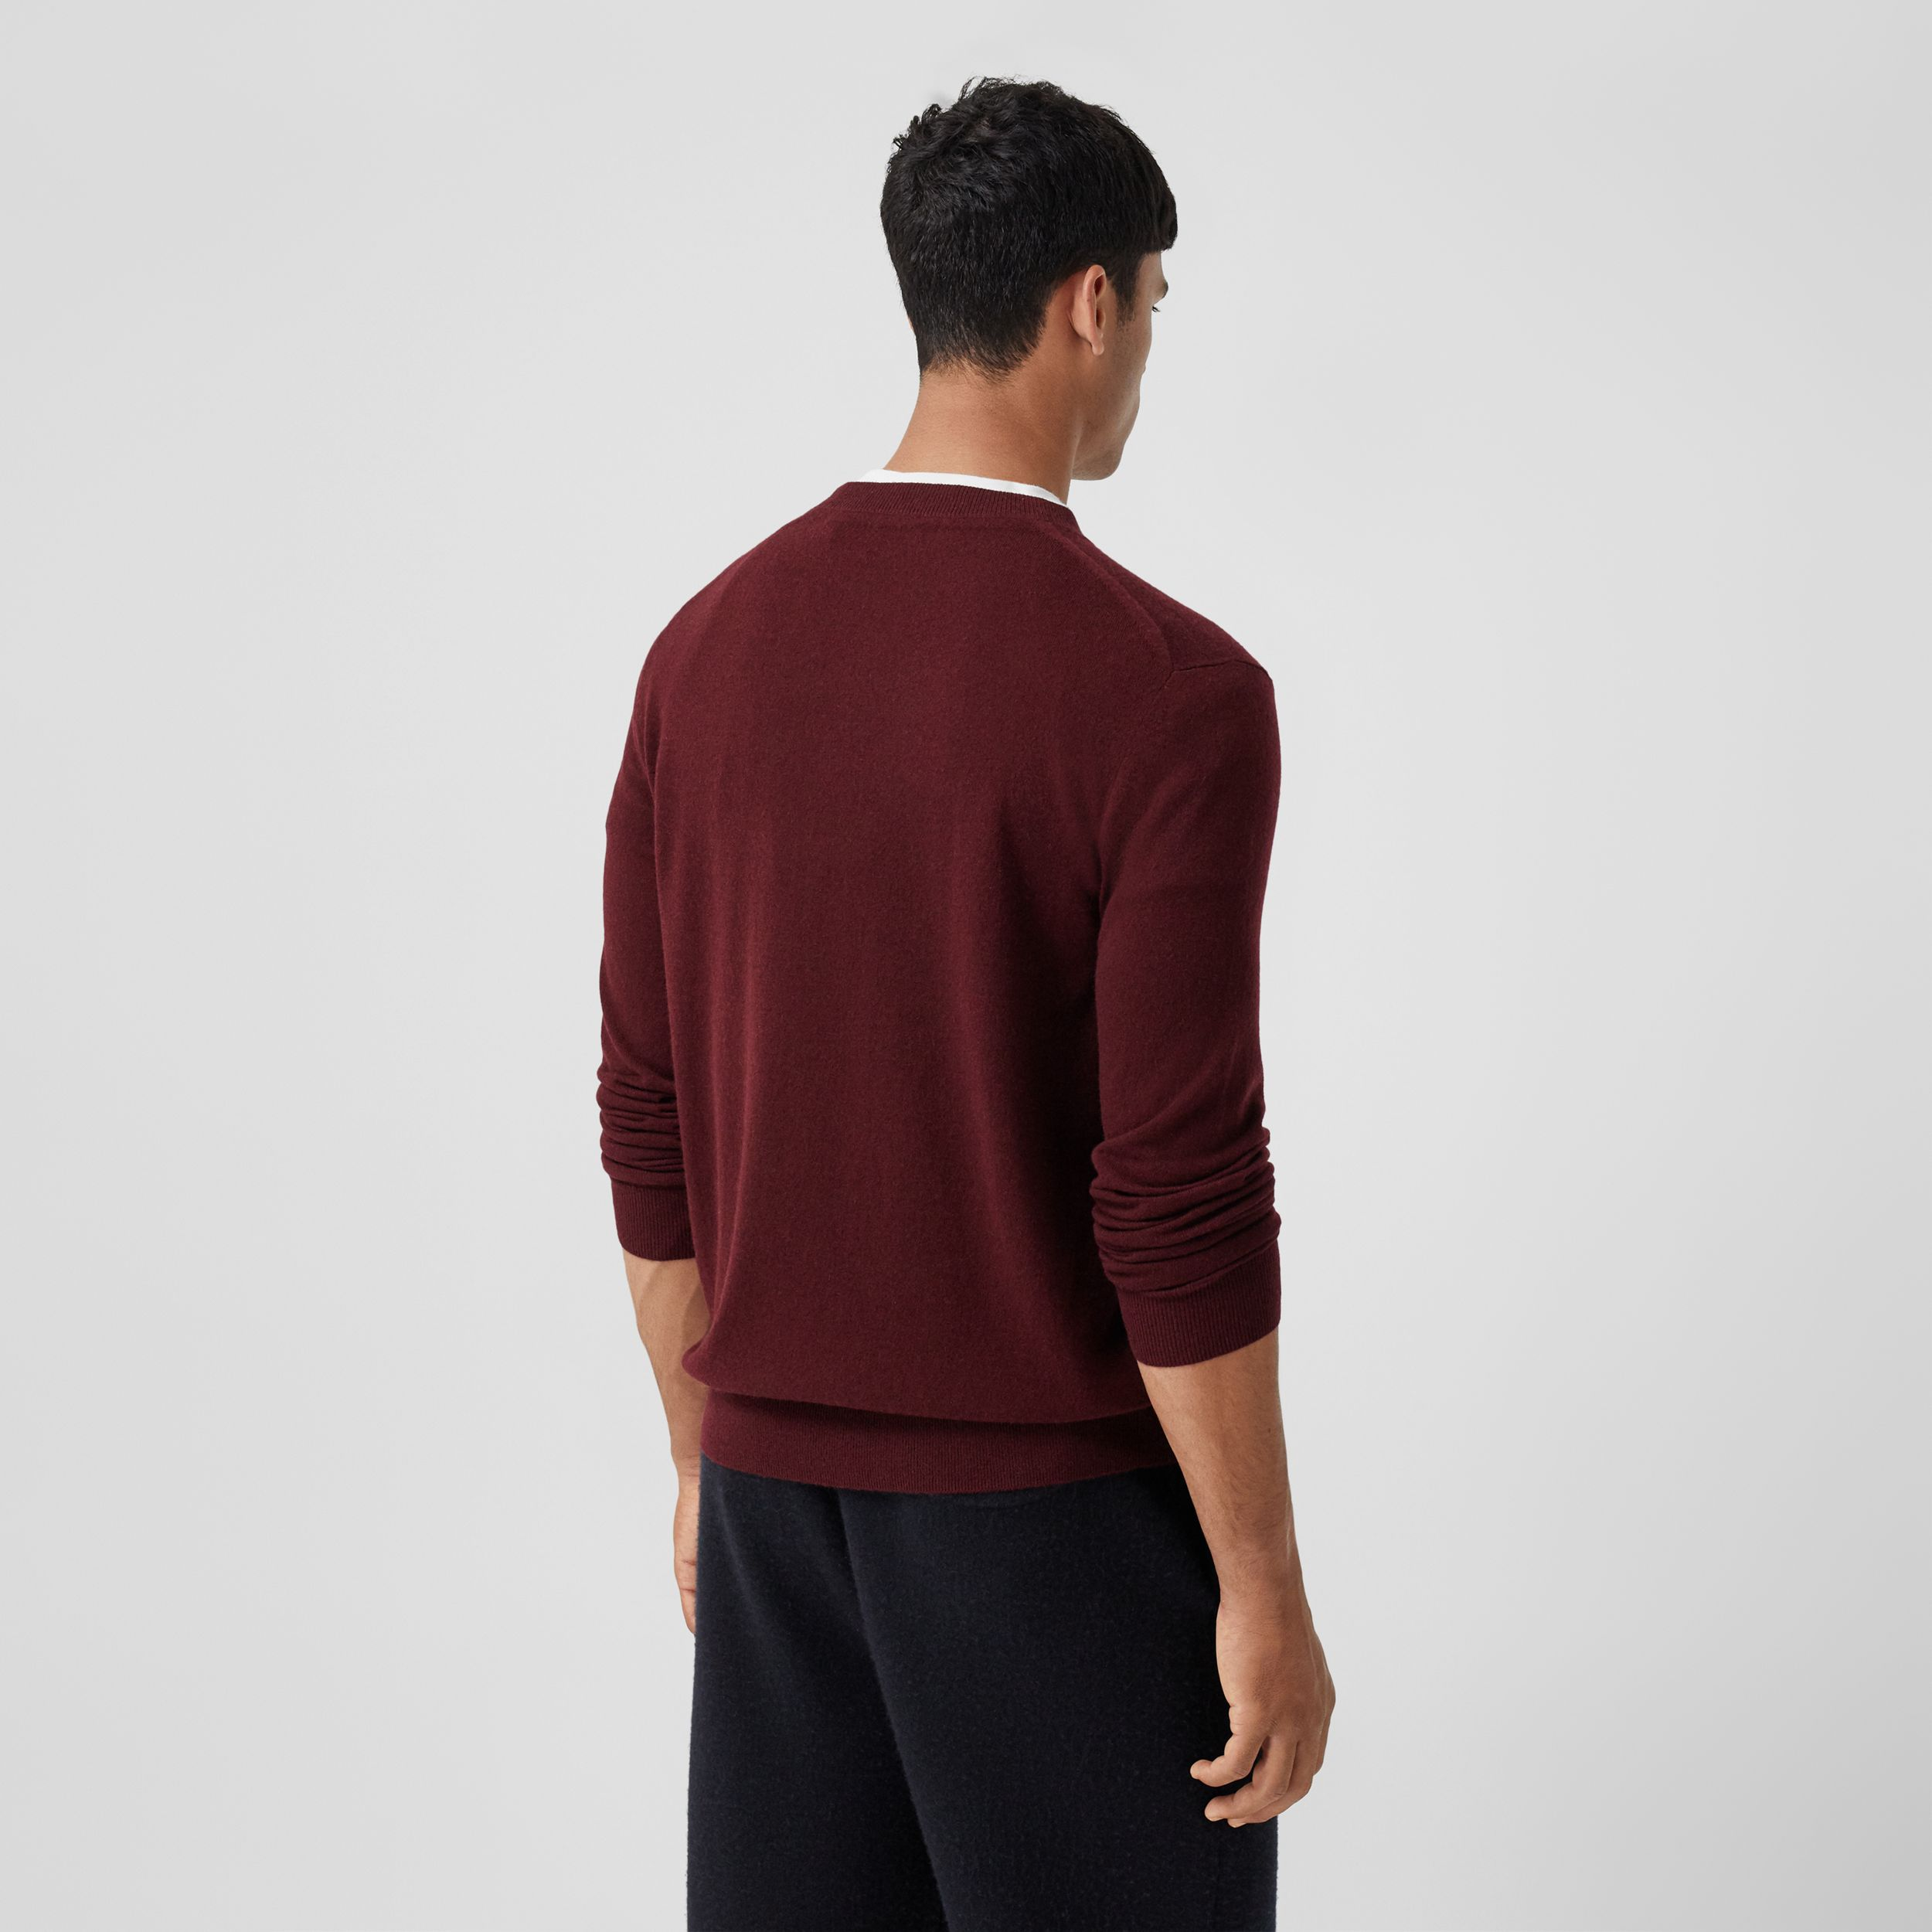 Monogram Motif Cashmere Sweater in Deep Merlot - Men | Burberry United States - 3